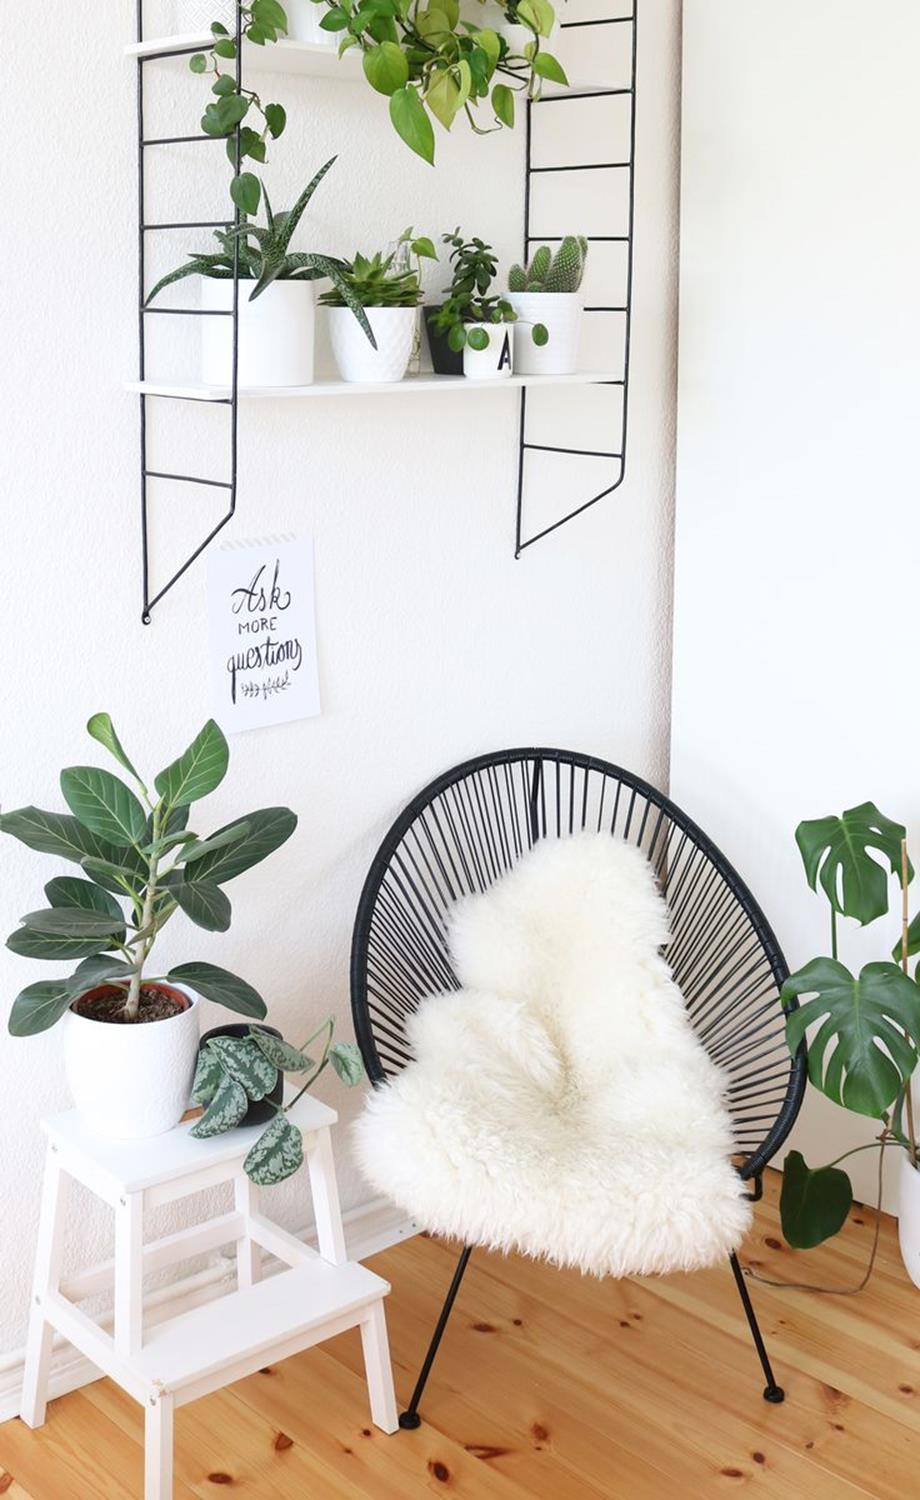 Urban Jungle Room Decor 16